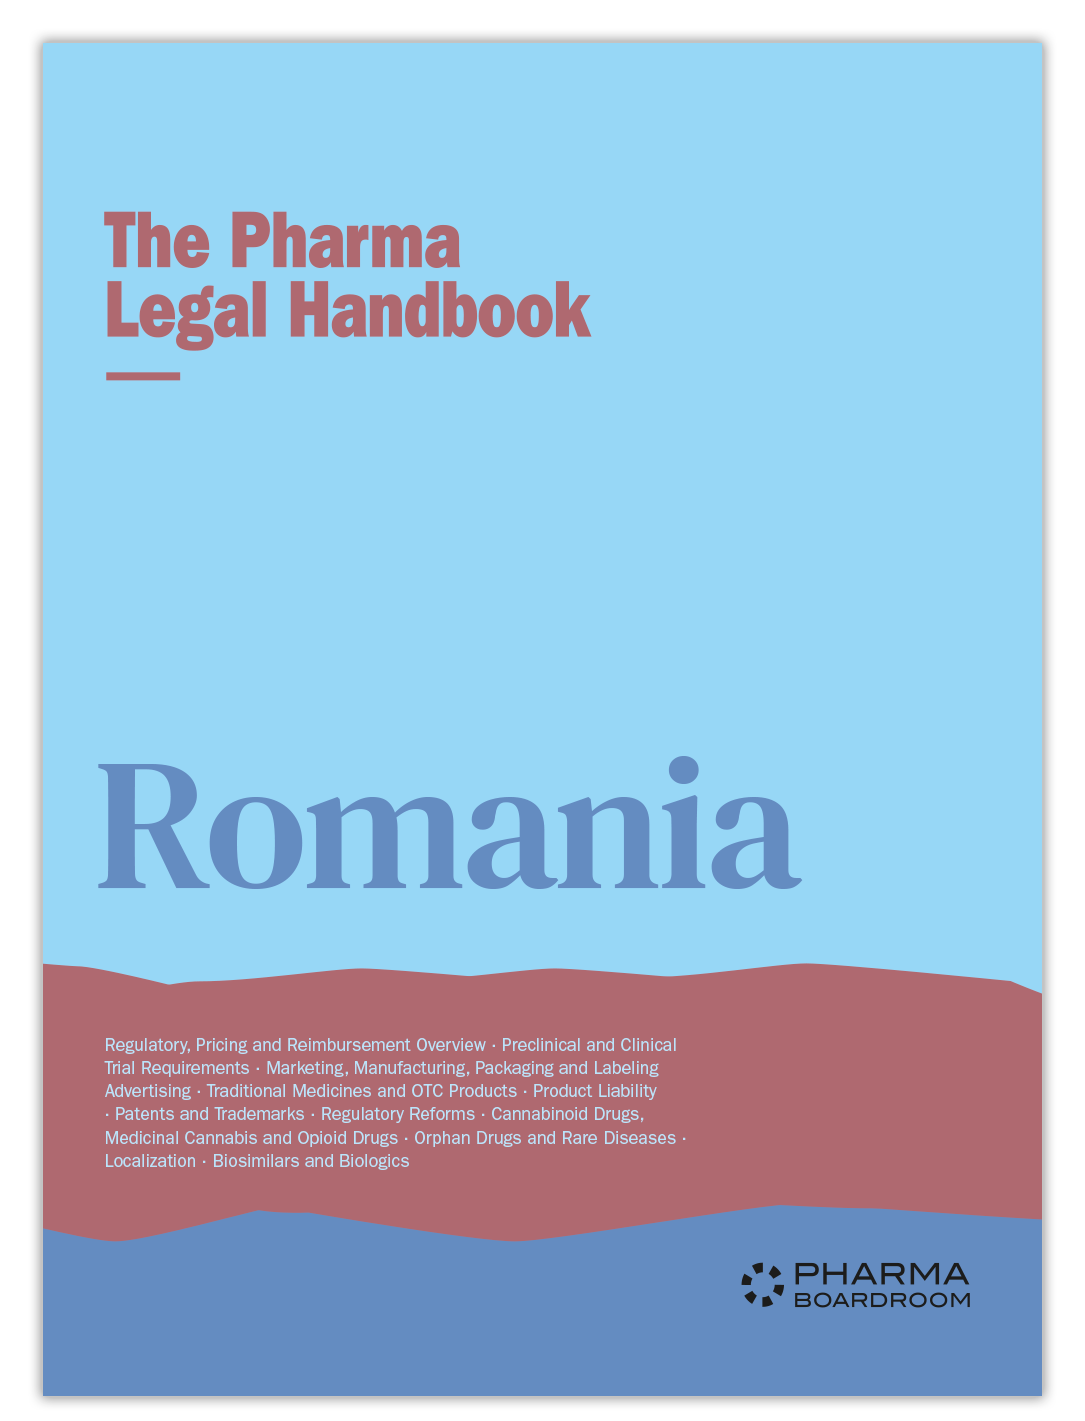 The Pharma Legal Handbook: Romania